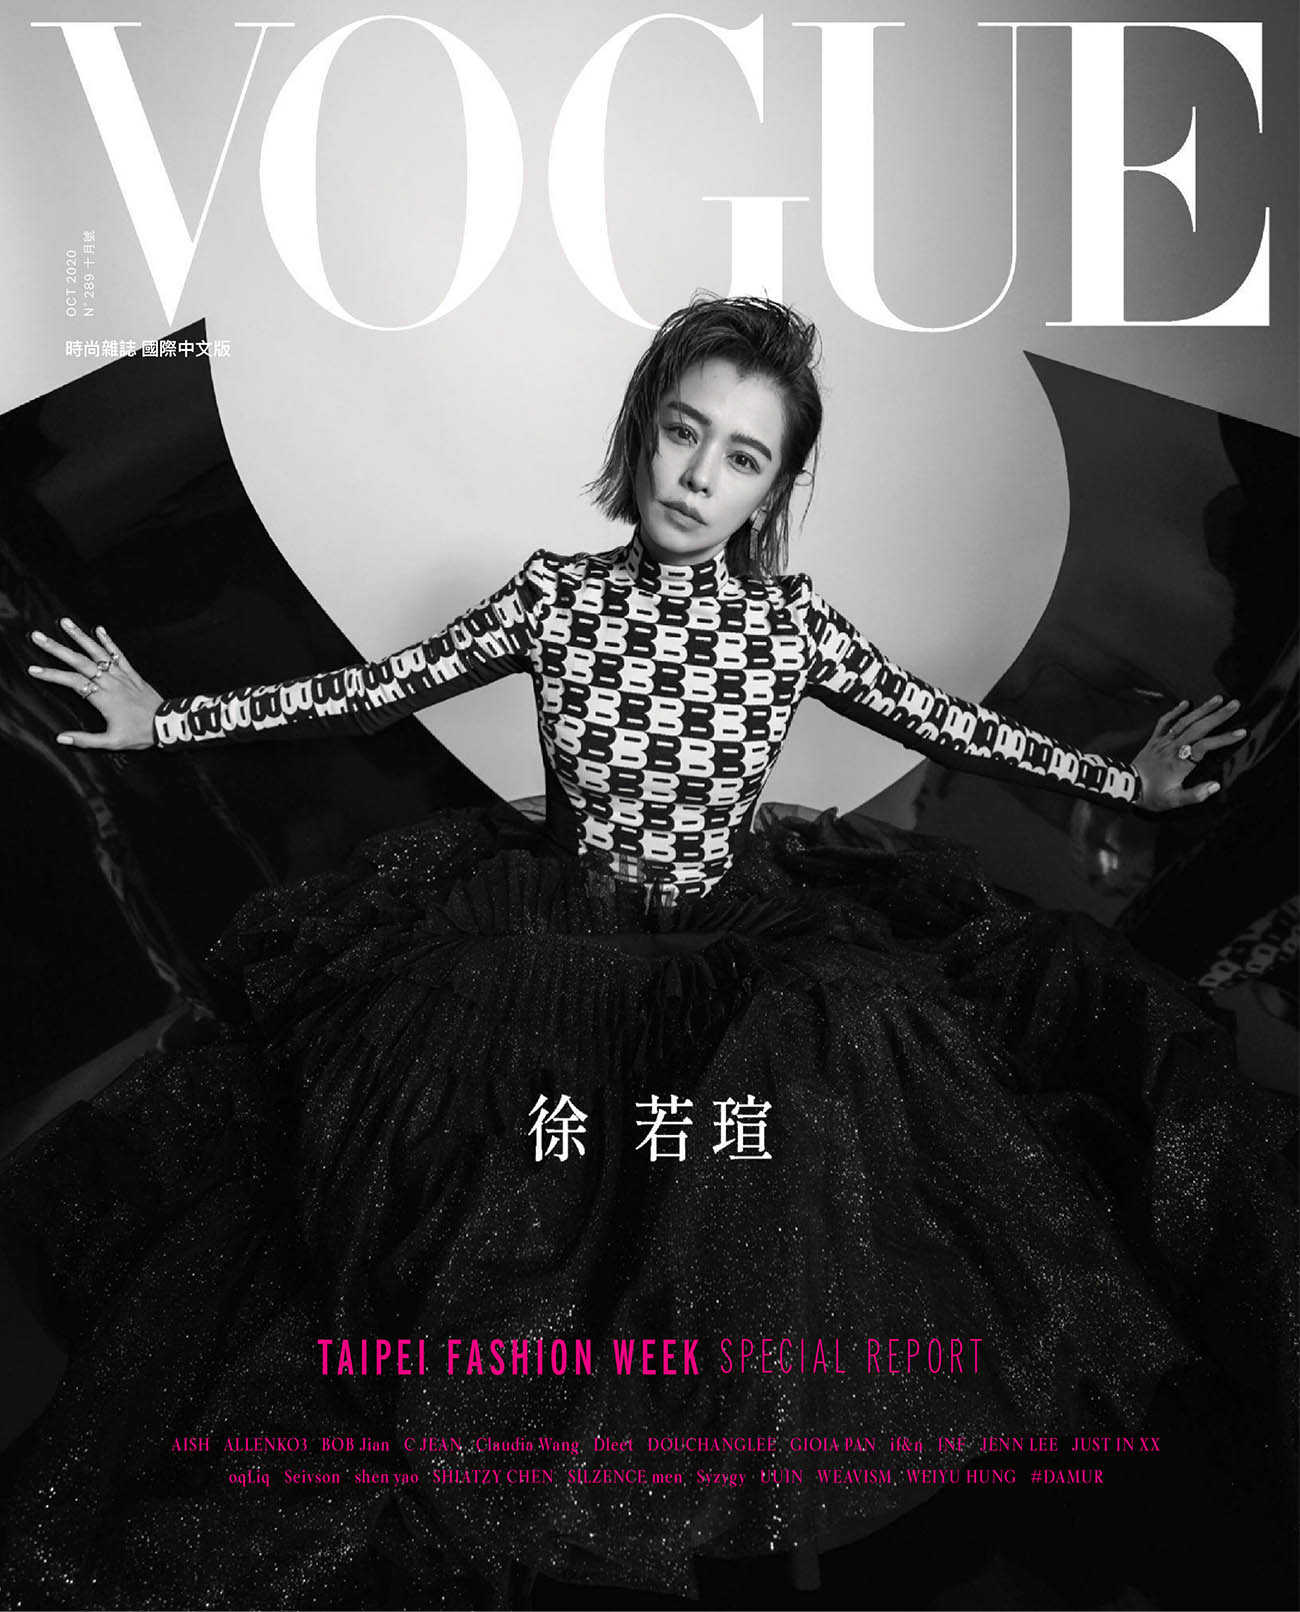 Vivian Hsu covers Vogue Taiwan October 2020 bVivian Hsu covers Vogue Taiwan October 2020 by Ming Shih Chiangy Ming Shih Chiang